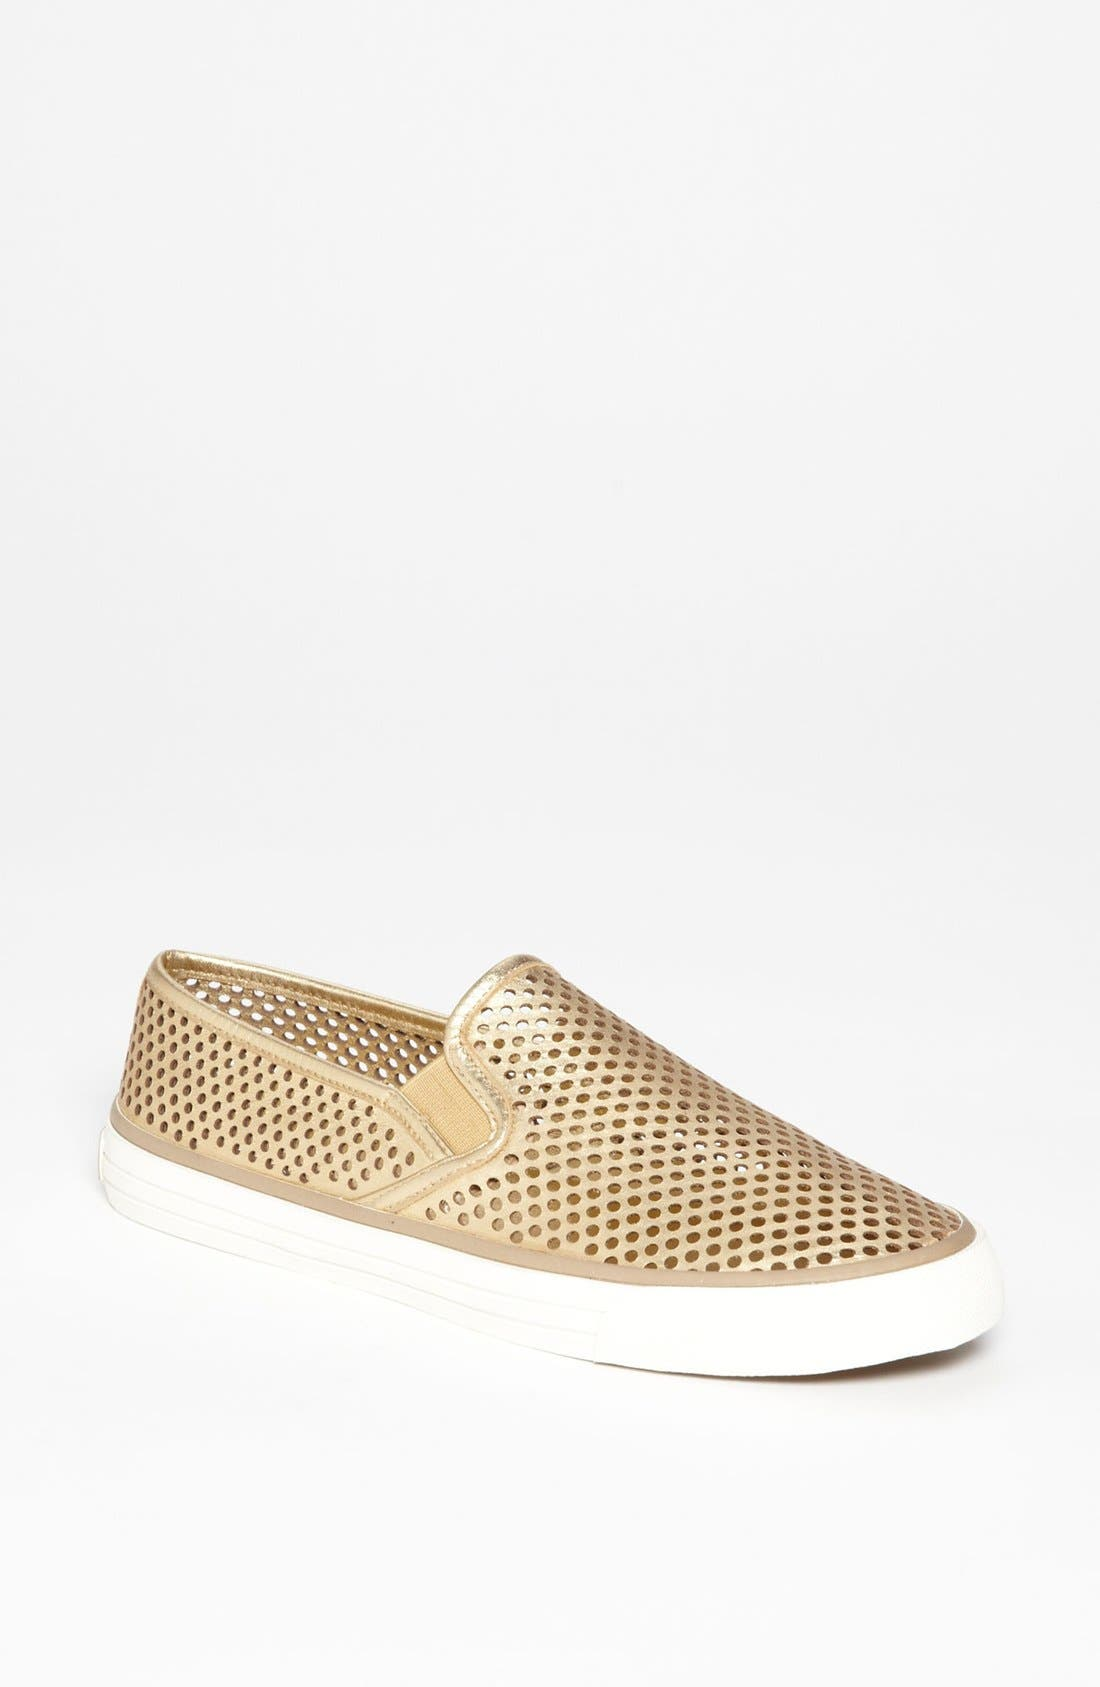 Alternate Image 1 Selected - Tory Burch 'Miles' Perforated Sneaker